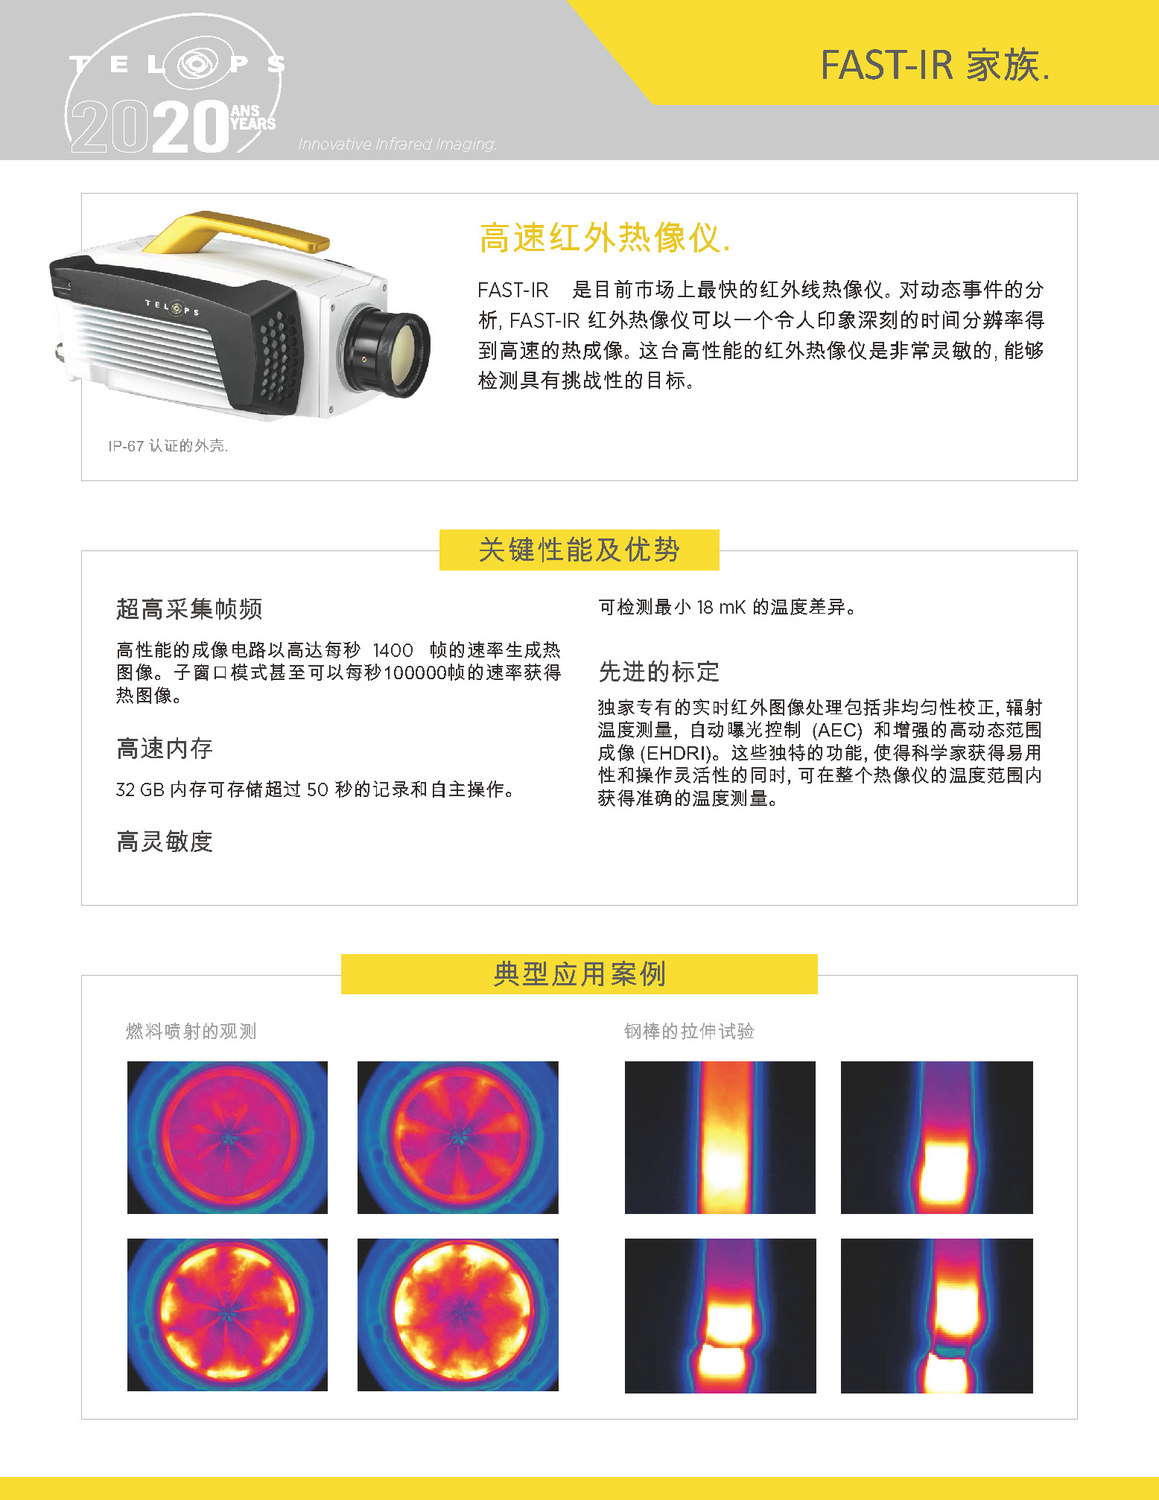 2020 FAST-IR Brochure - CHINA_页面_1.jpg